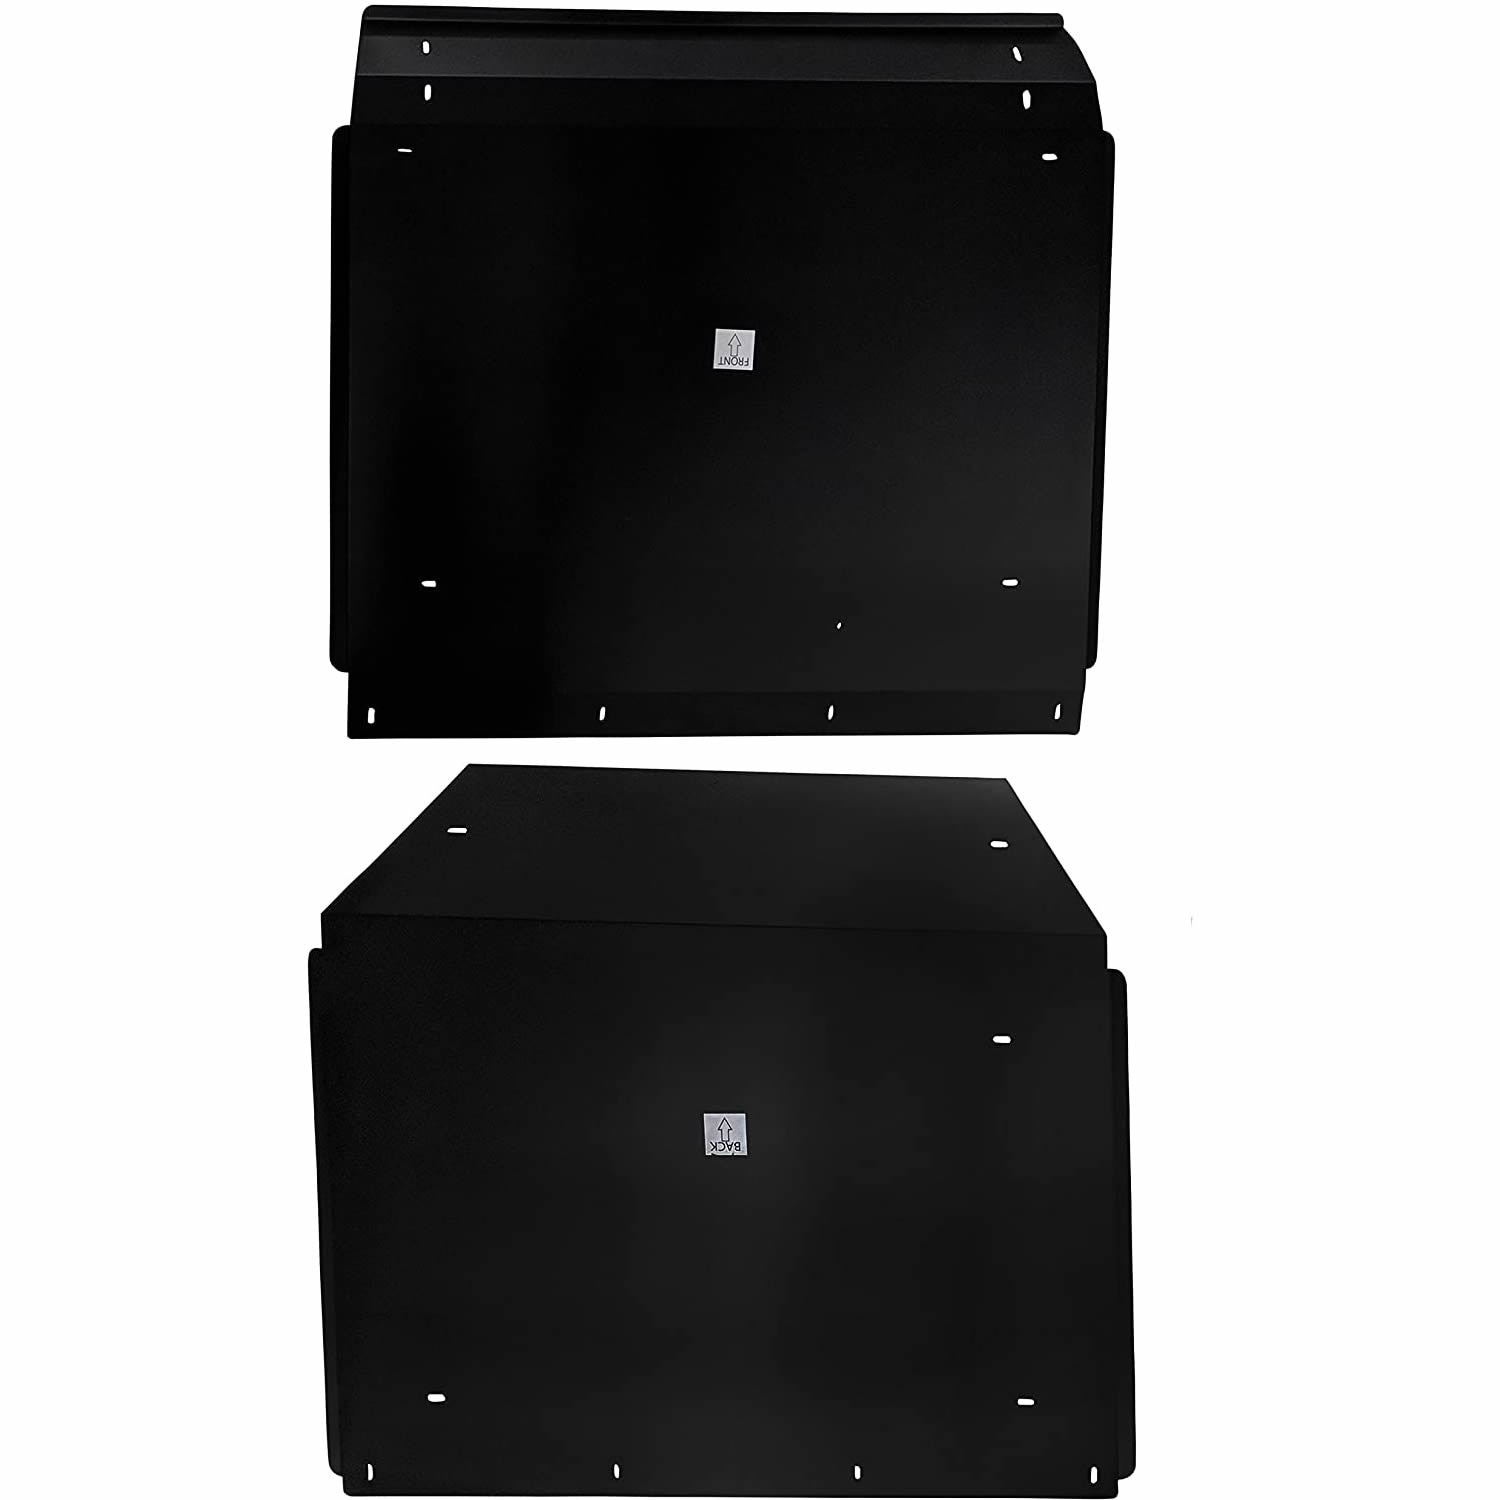 Roof Panels Cover Front Rear For 2014-2018 Polaris RZR XP-4 1000,2015-2018 Polaris RZR 4 900/s,2016-2018 Polaris RZR XP 4 Turbo enlarge